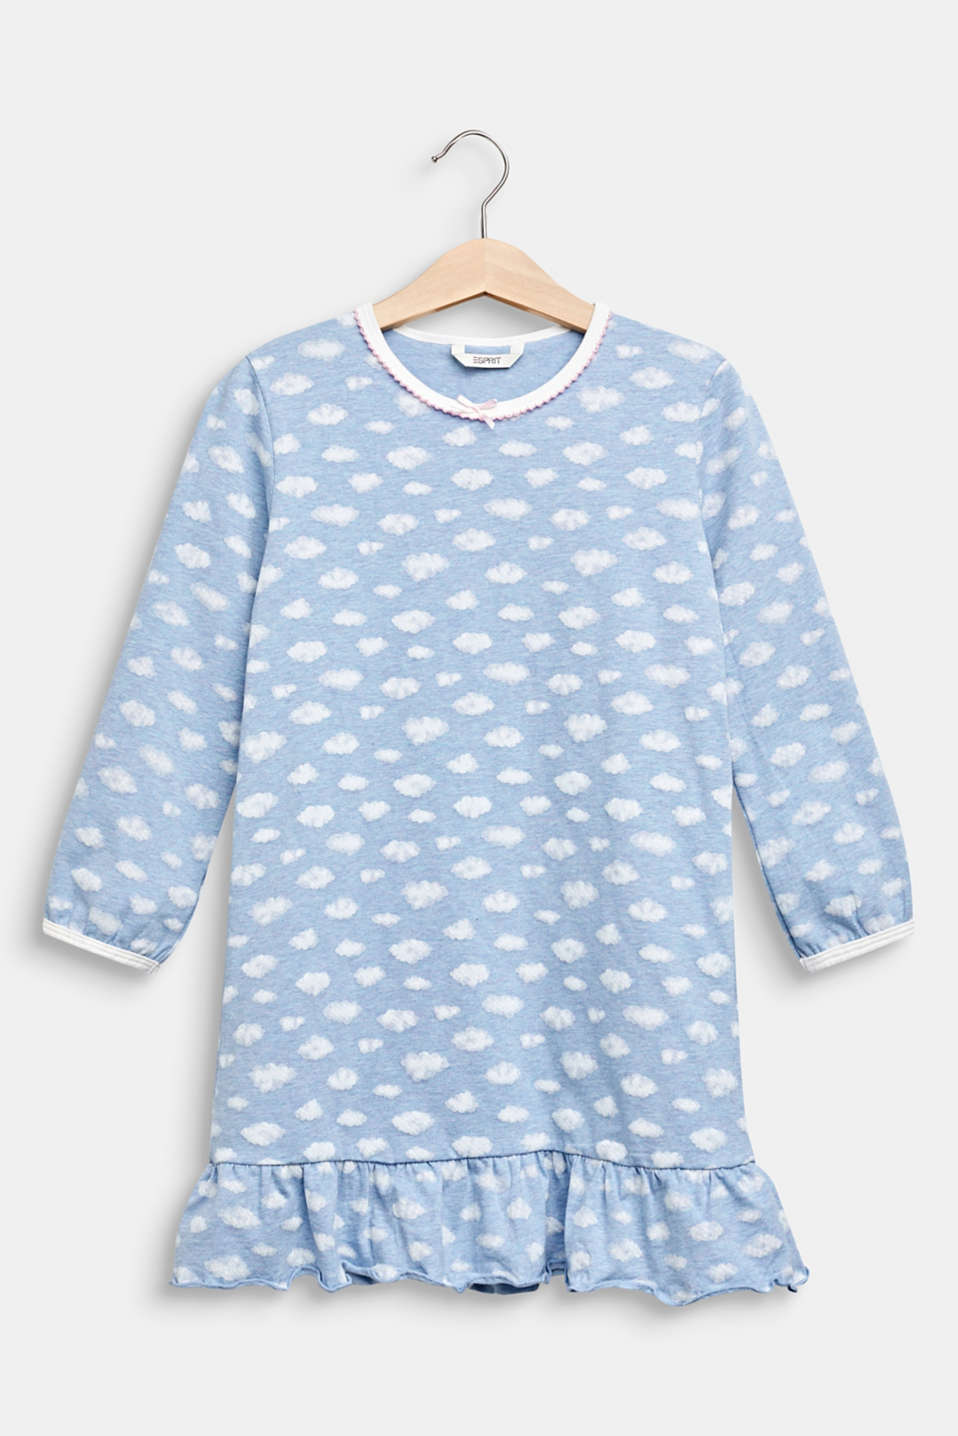 Esprit - Nightshirt with a cloud print in stretch cotton